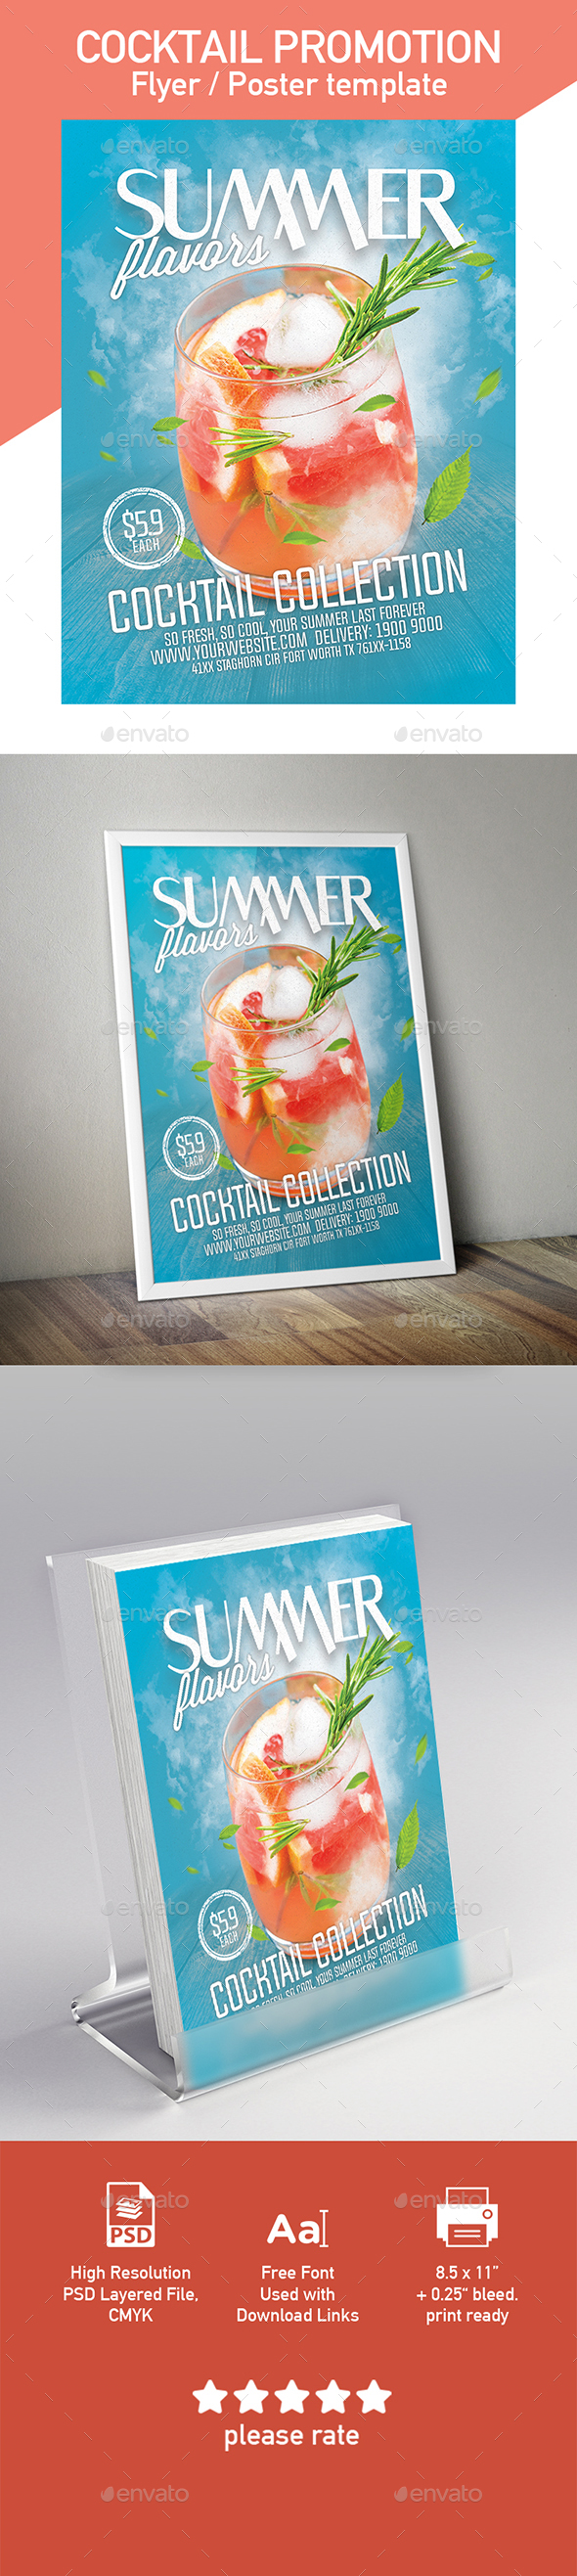 Summer Cocktail Flyer / Poster Template - Flyers Print Templates